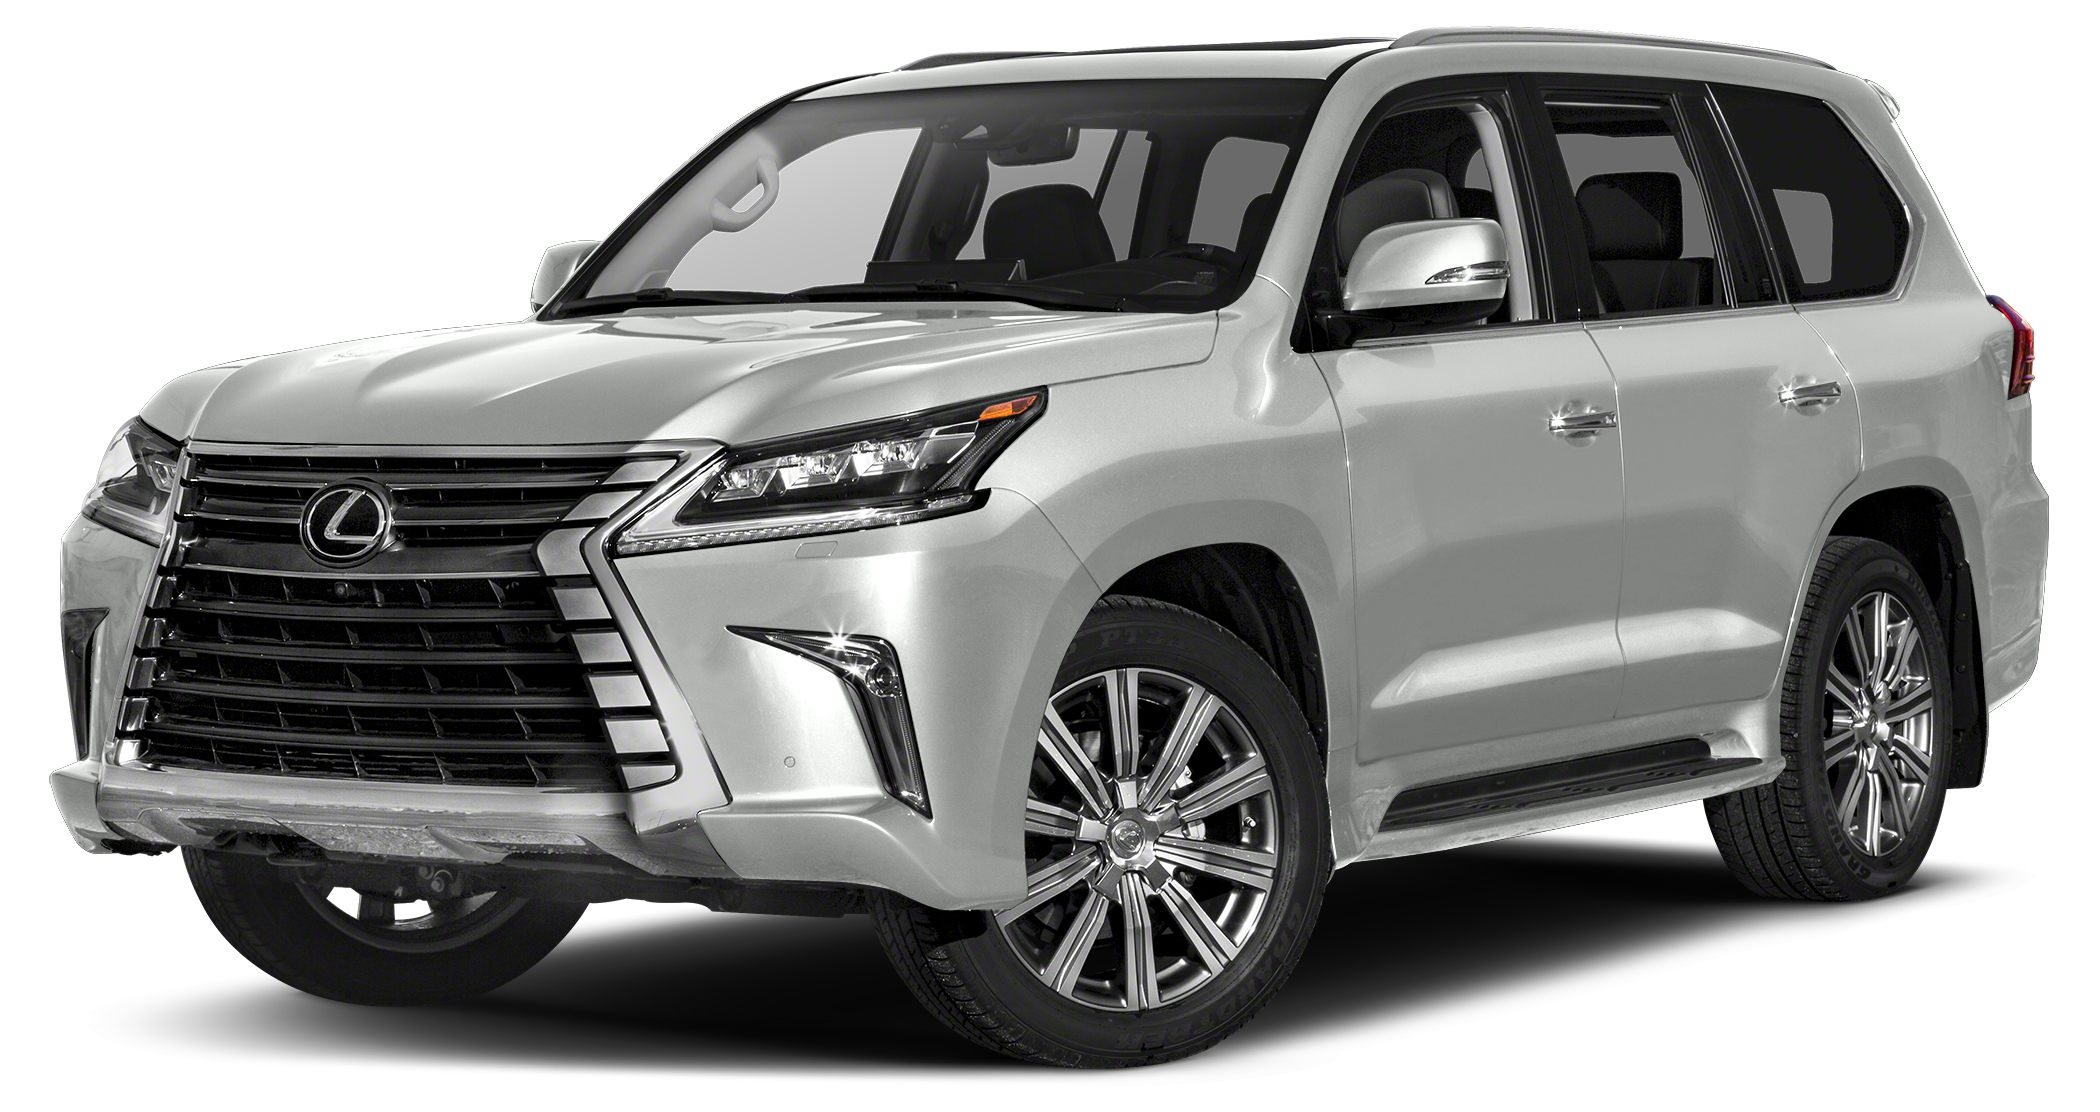 Lexus Lx Suv In Houston TX For Sale ▷ Used Cars Buysellsearch